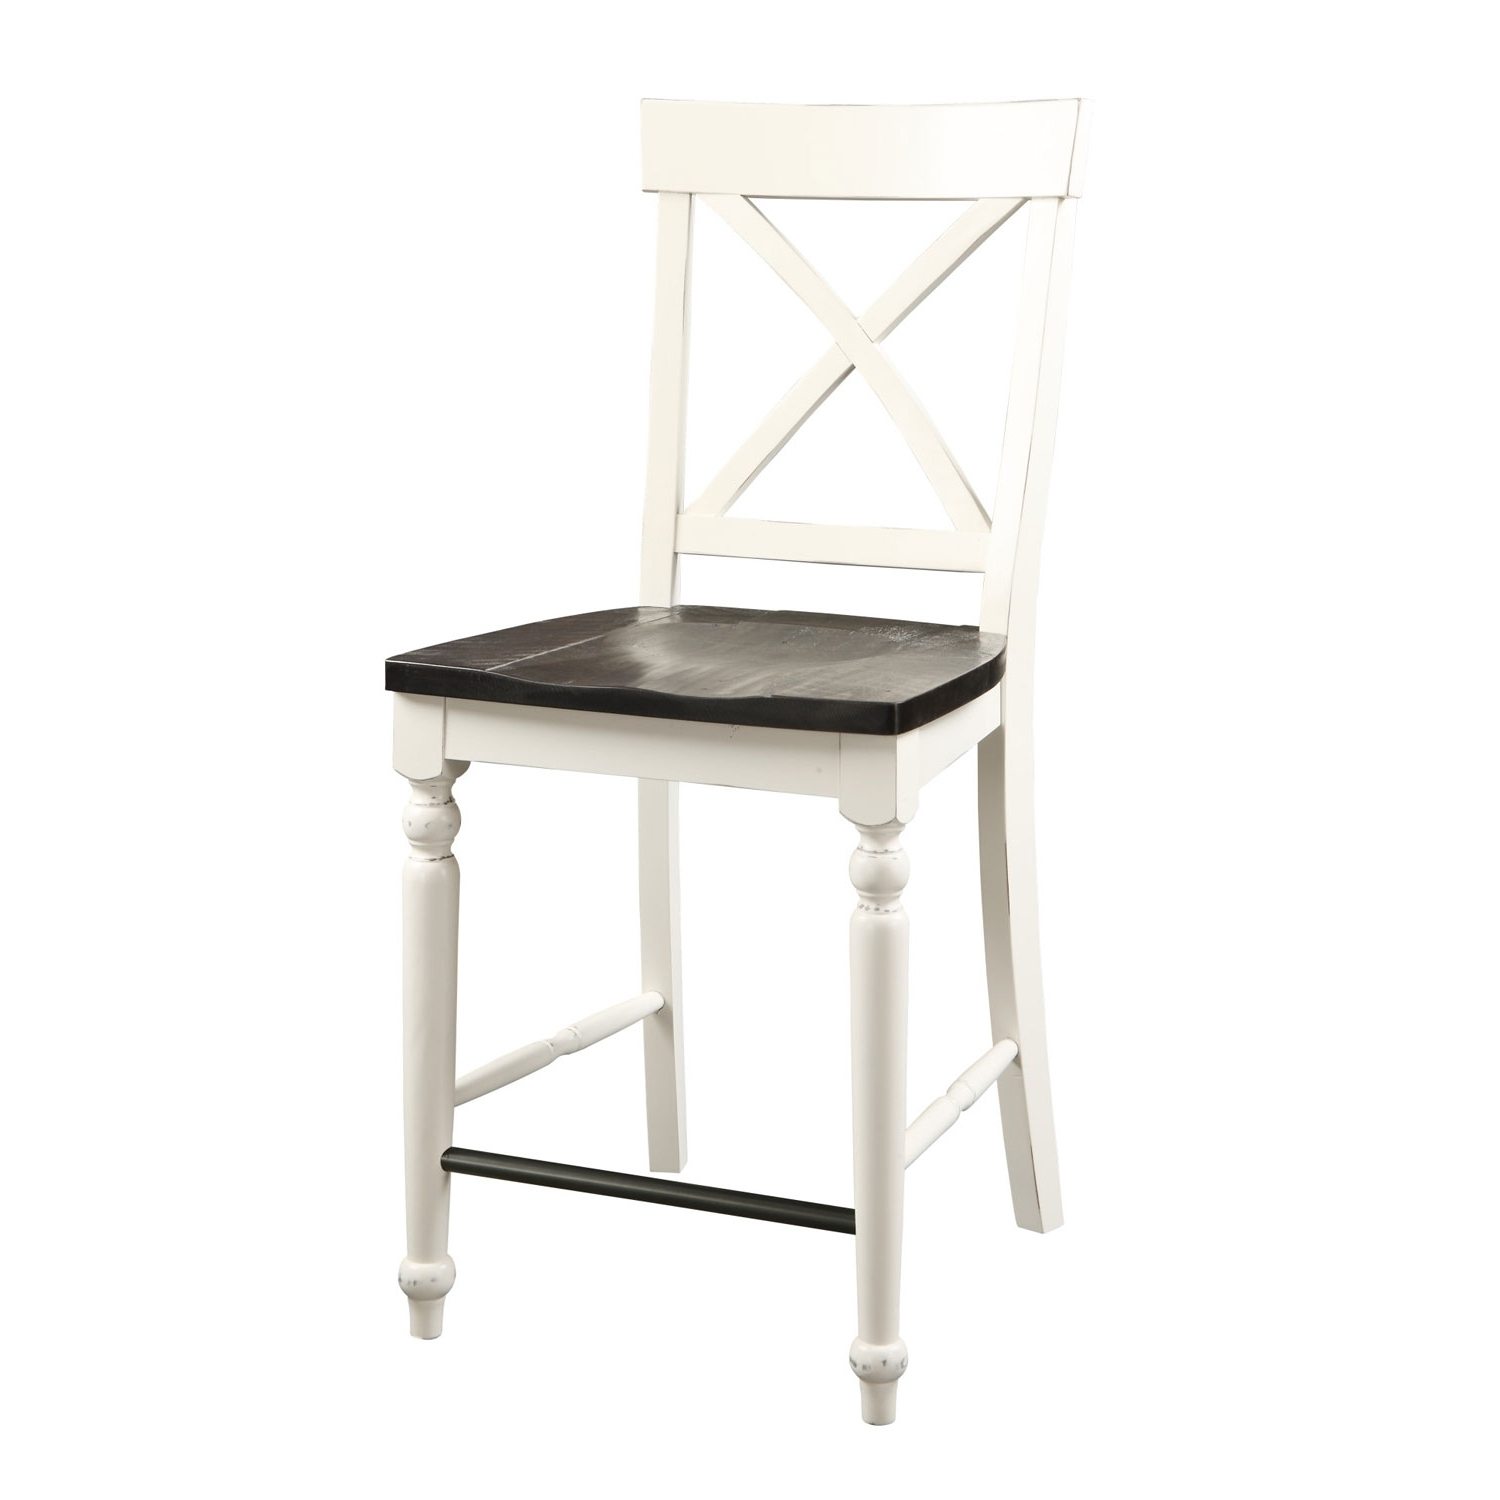 Emerald Home Furnishings Mountain Retreat X Back Barstool With Wood With Regard To 2017 Jaxon Grey 5 Piece Extension Counter Sets With Wood Stools (View 2 of 25)